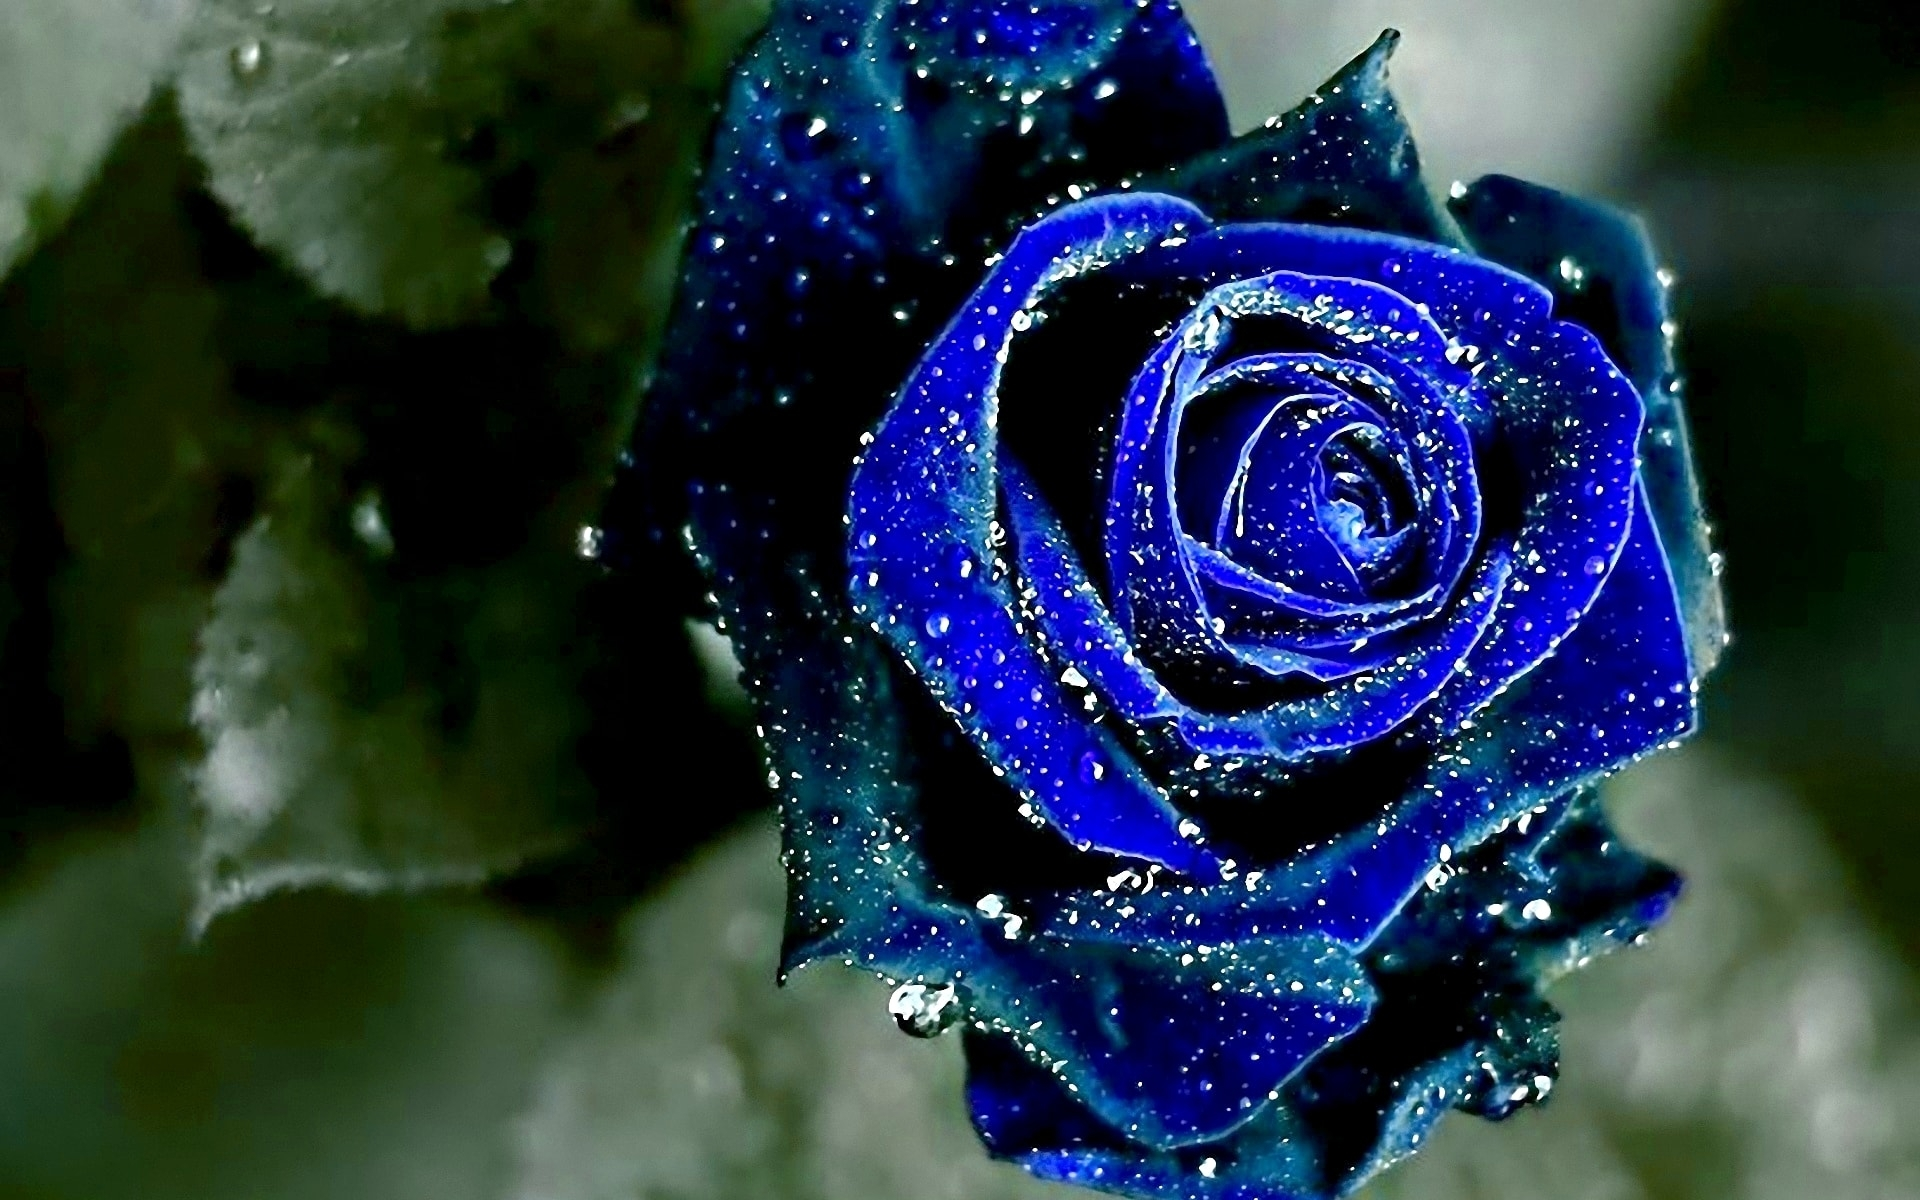 blue rose hd desktop wallpapers | 7wallpapers